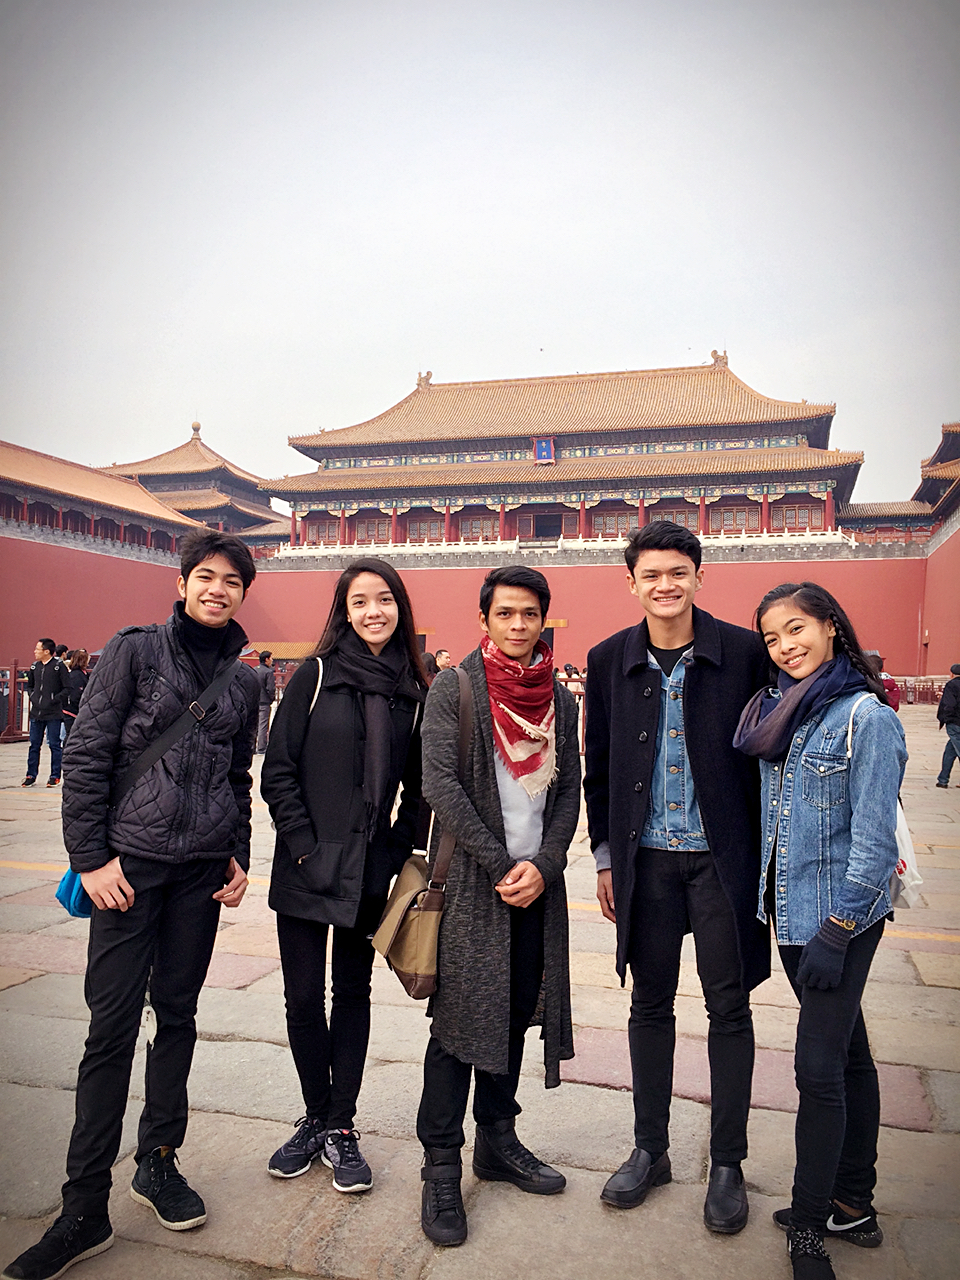 lvin Dictado, Marinette Franco, Joshua Enciso and Nicole Barroso take in the sights at the Forbidden City together with delegation head, BM principal dancer Gerardo Francisco. Photo courtesy of Gerardo Francisco